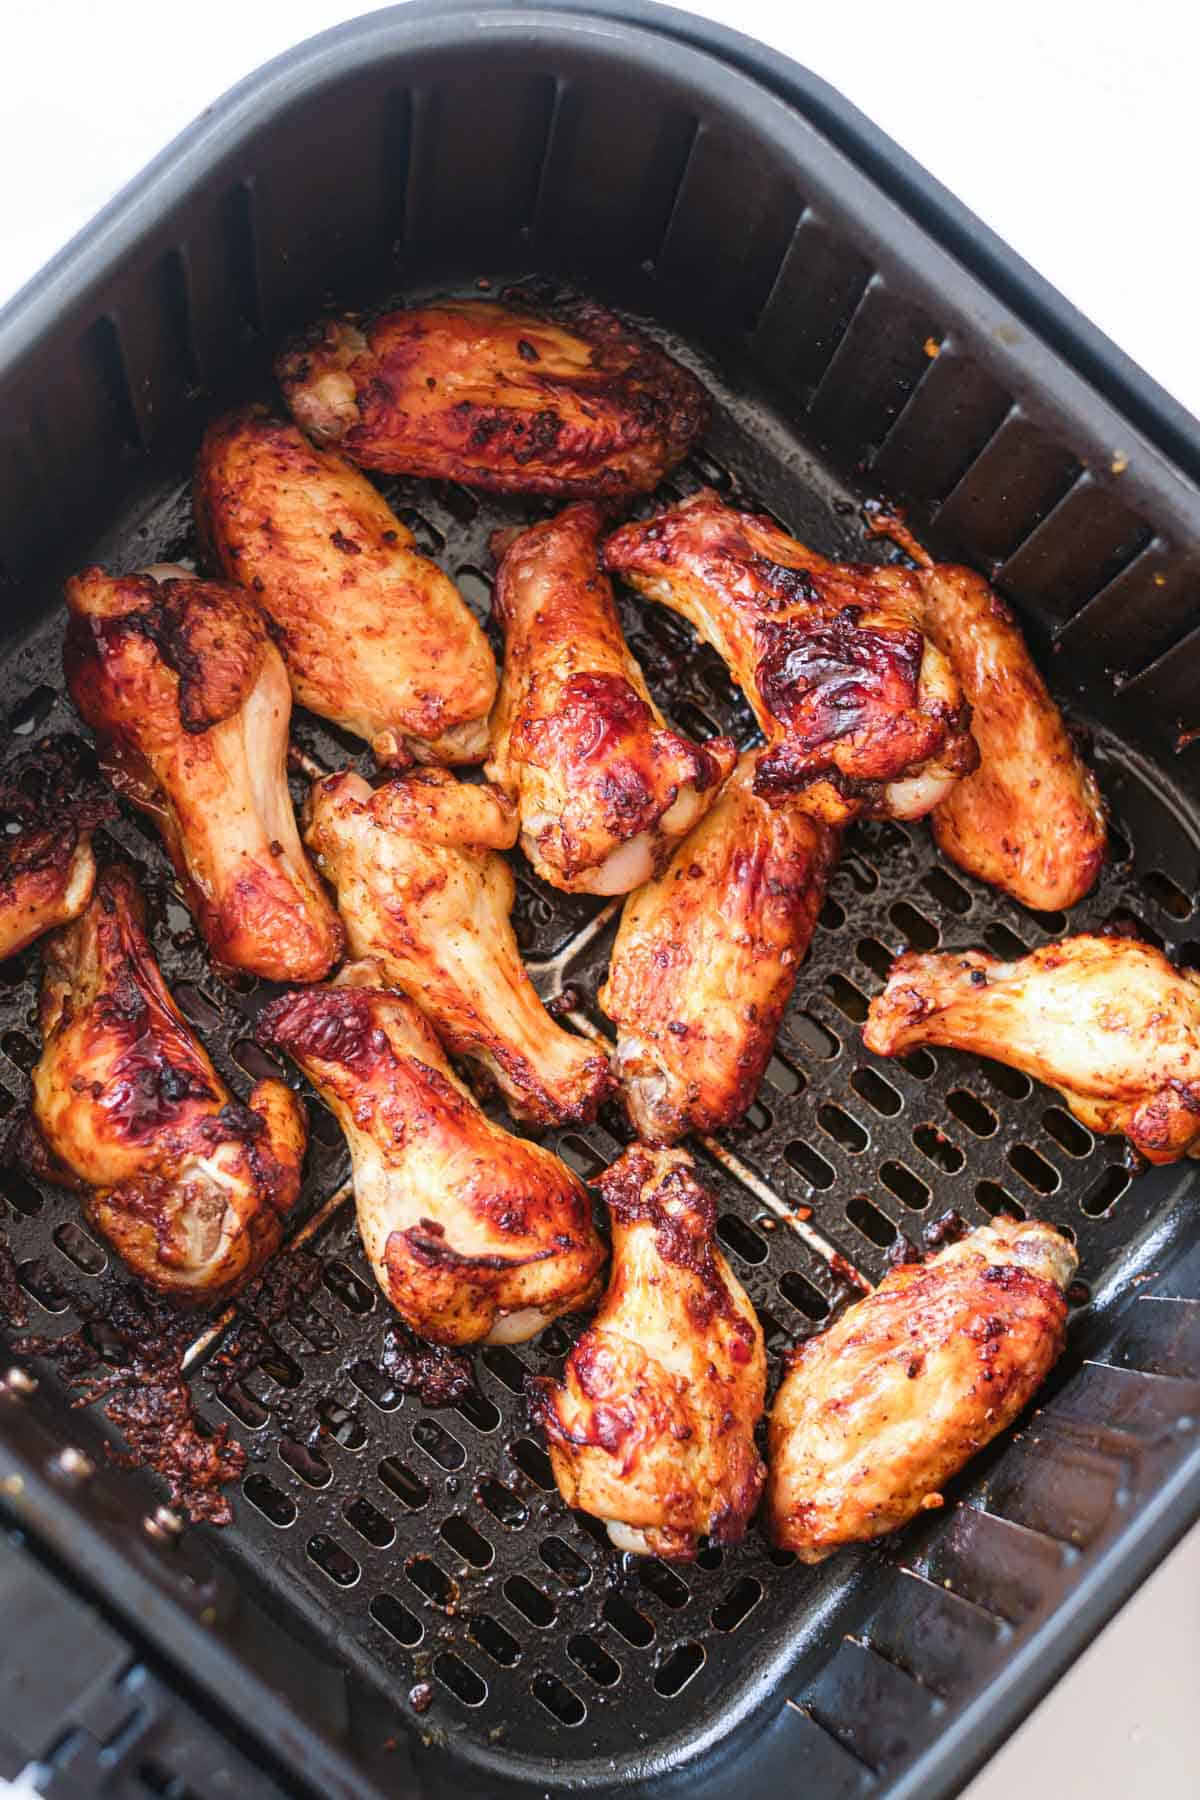 the cooked jerk chicken wings inside the air fryer basket